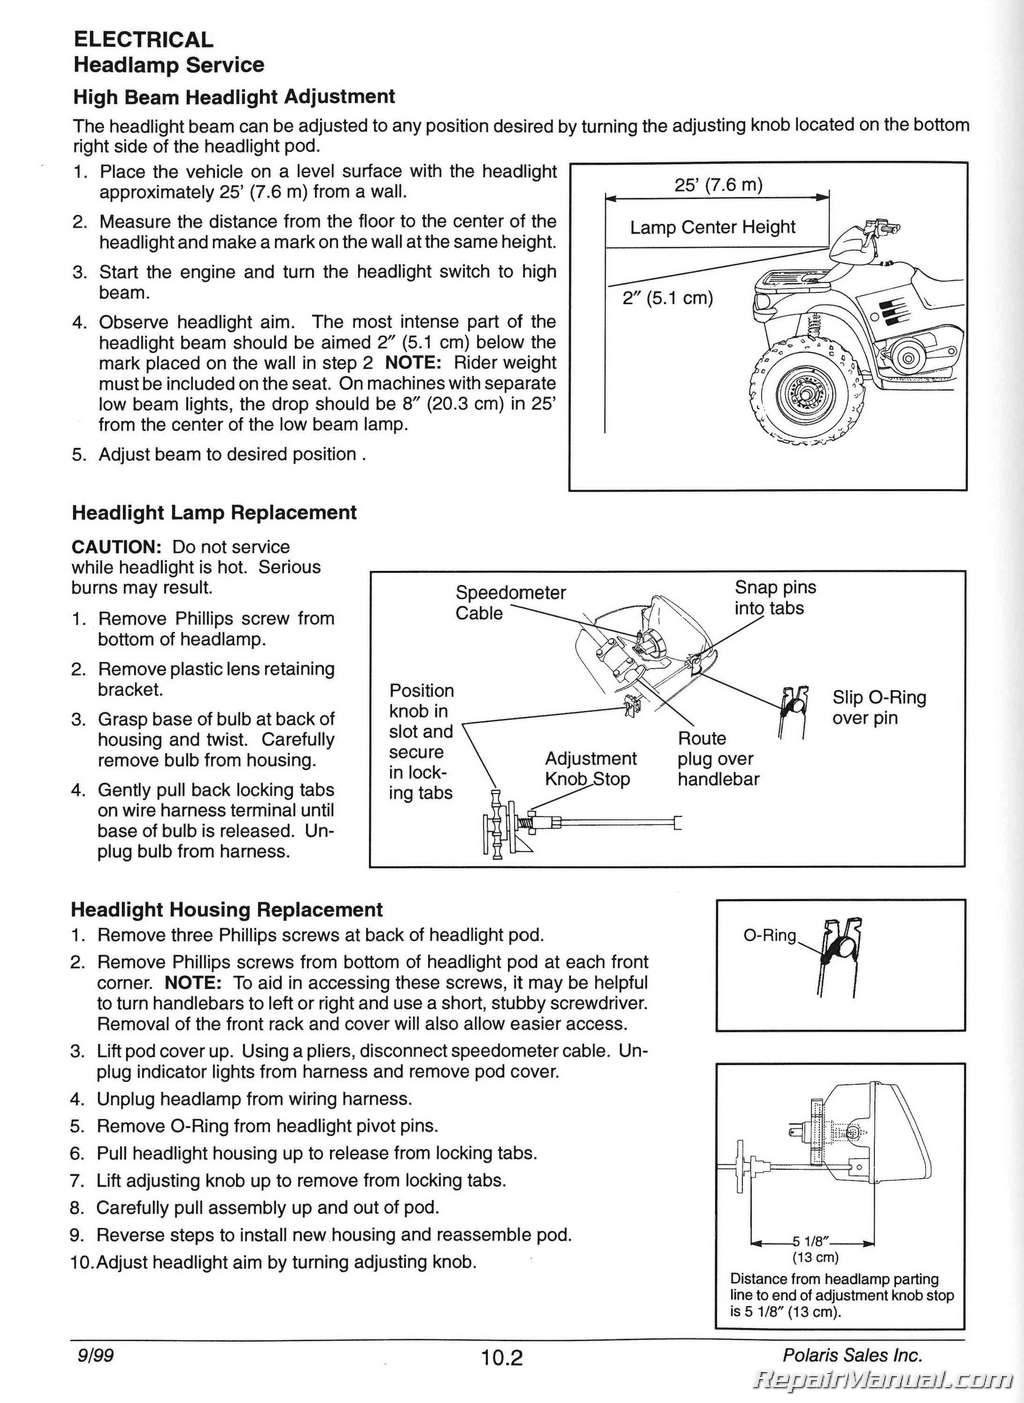 wiring diagram 2000 polaris scrambler 4x4 1996 2000 polaris sportsman 335 500 atv service manual  1996 2000 polaris sportsman 335 500 atv